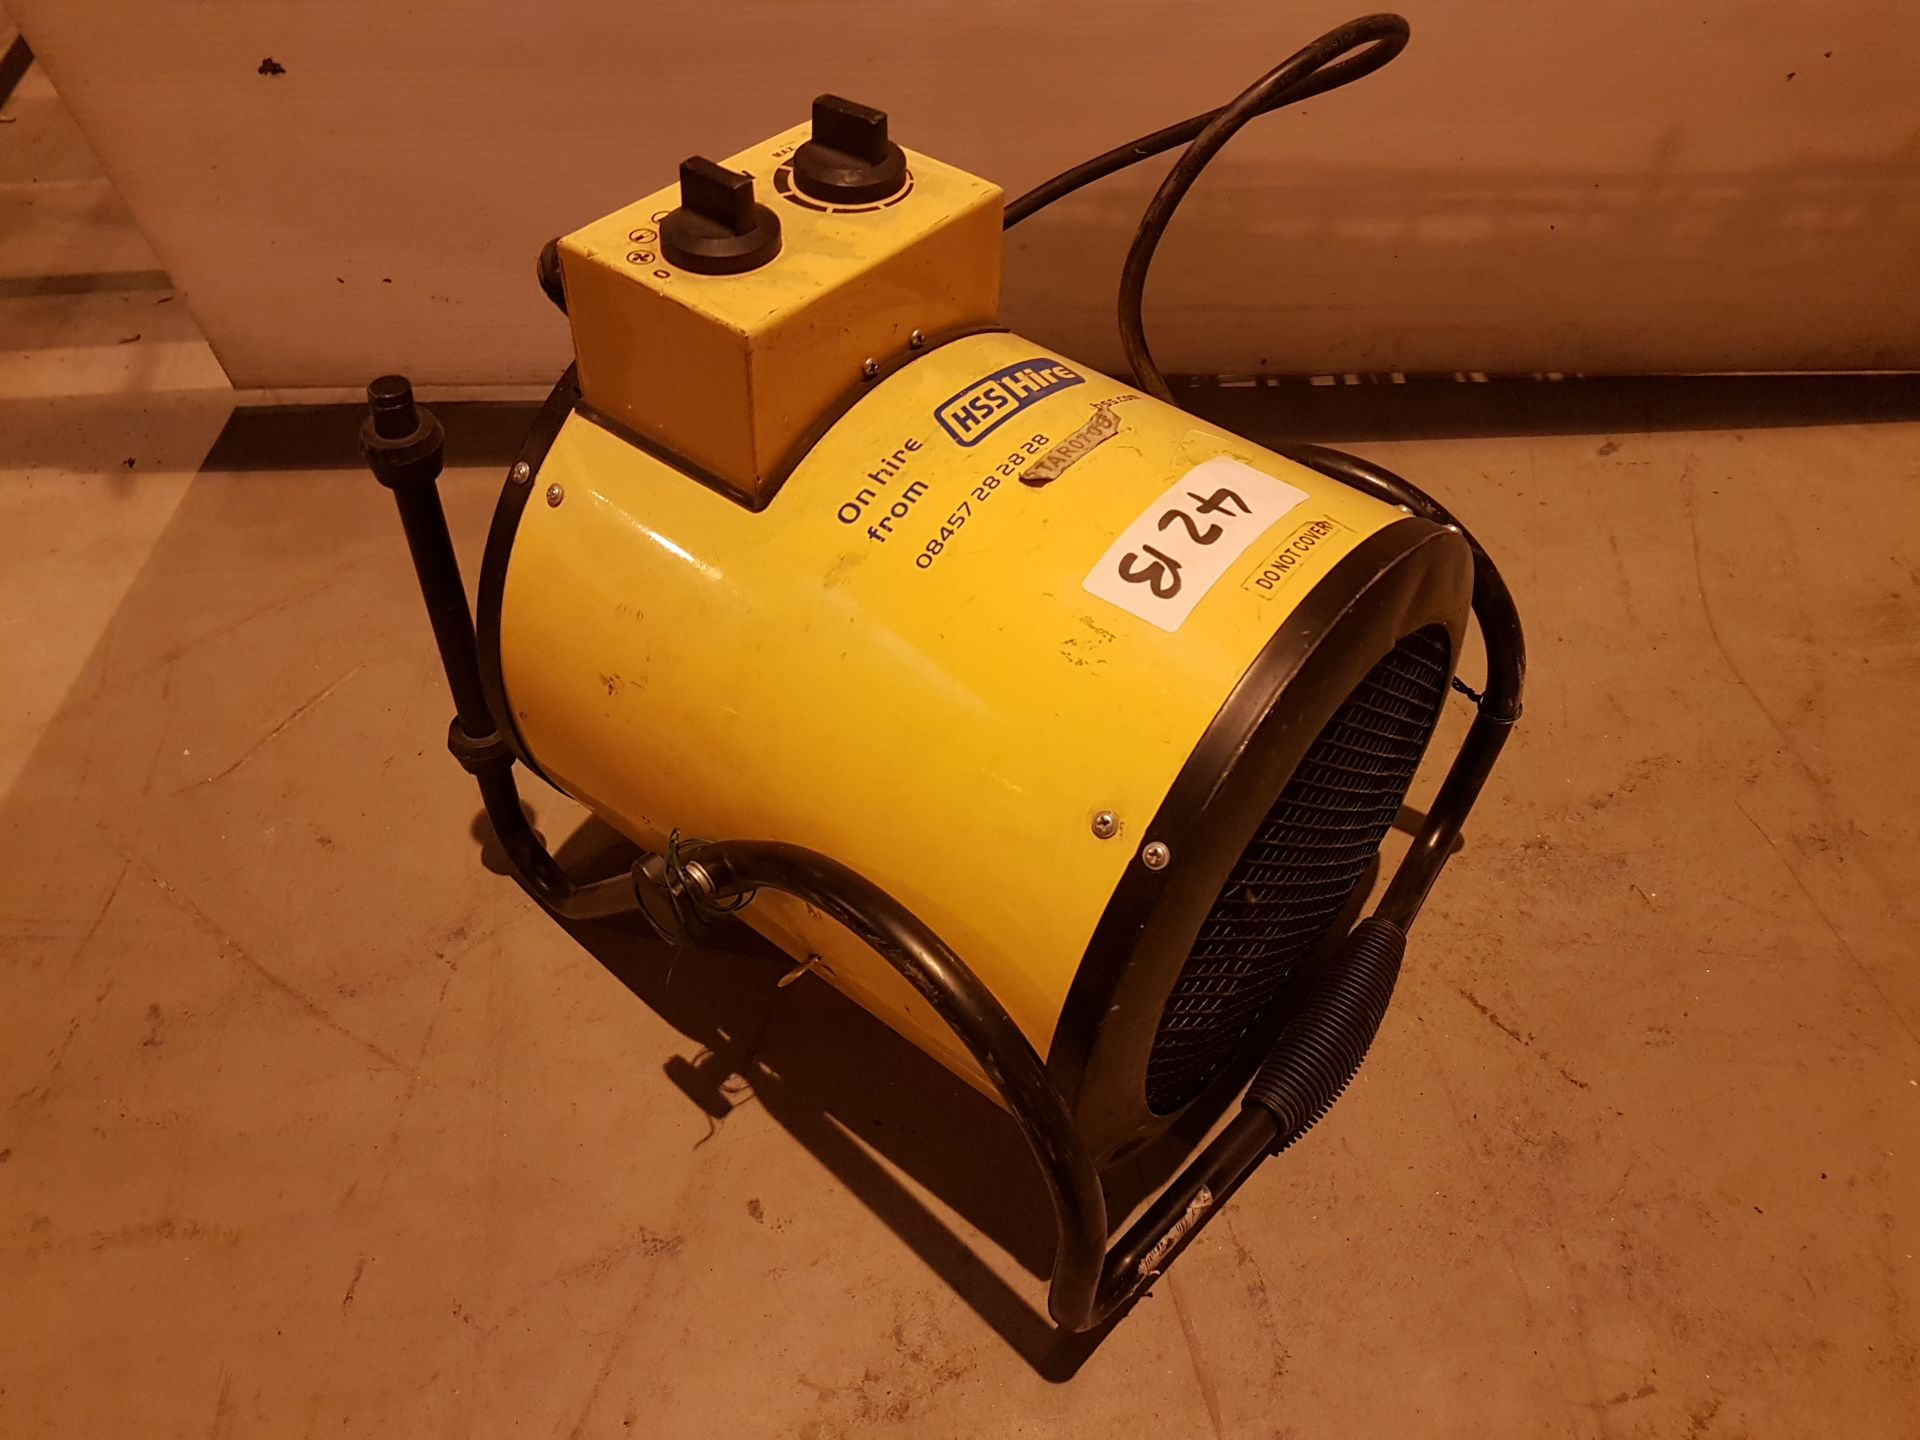 Lot 42 - 240v Retail Heater rtar0706, working